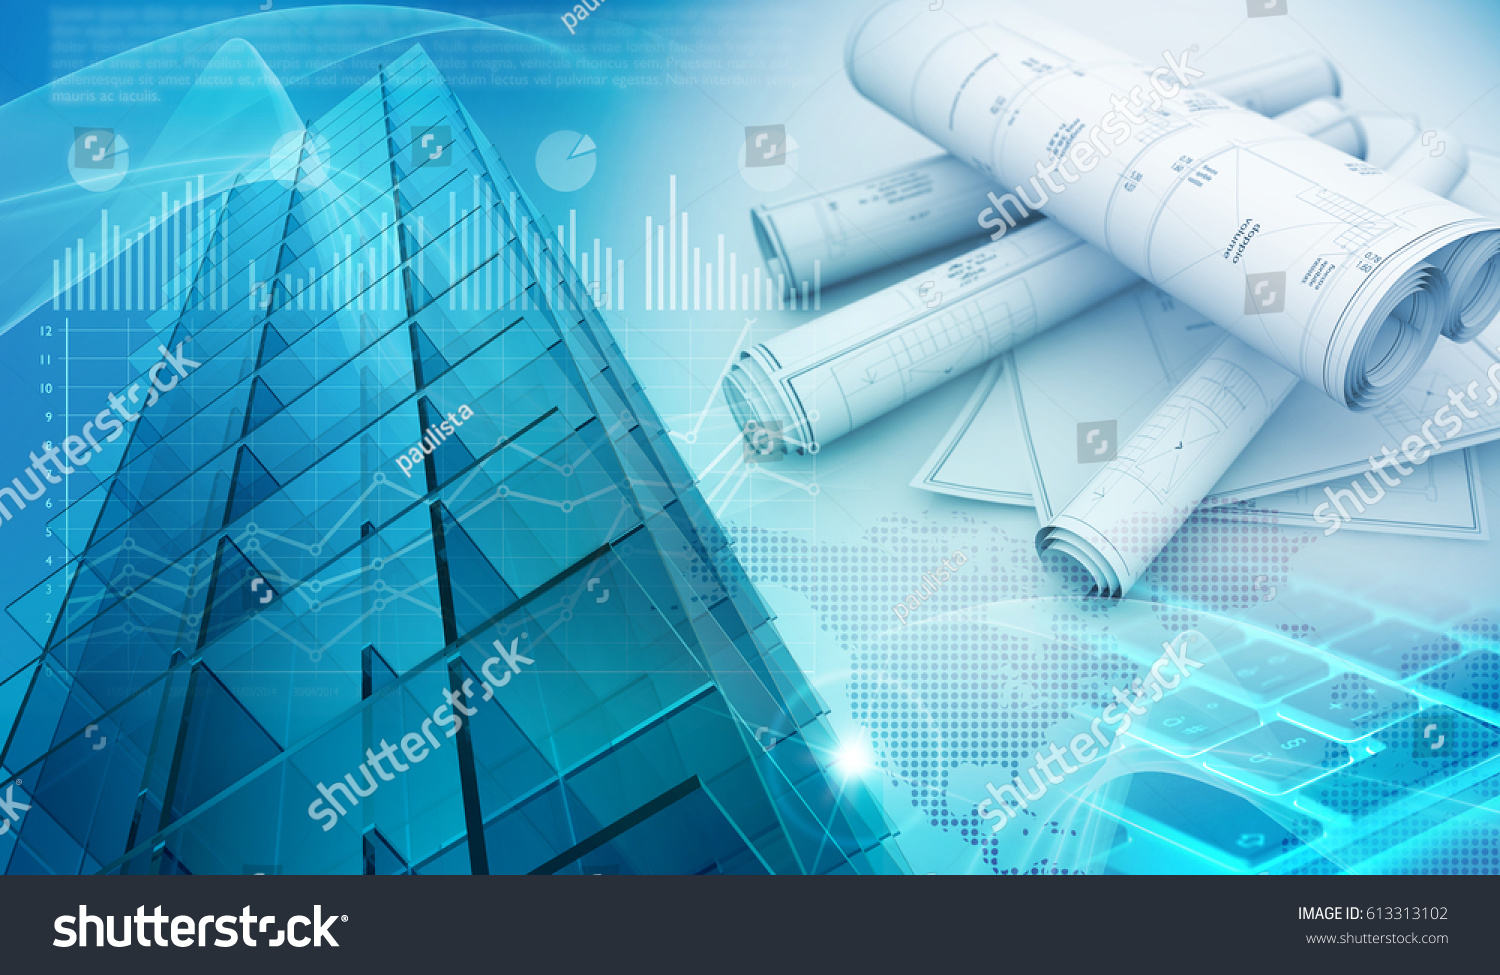 Skyscraper Exterior And Architectural Blueprints 3d Illustration